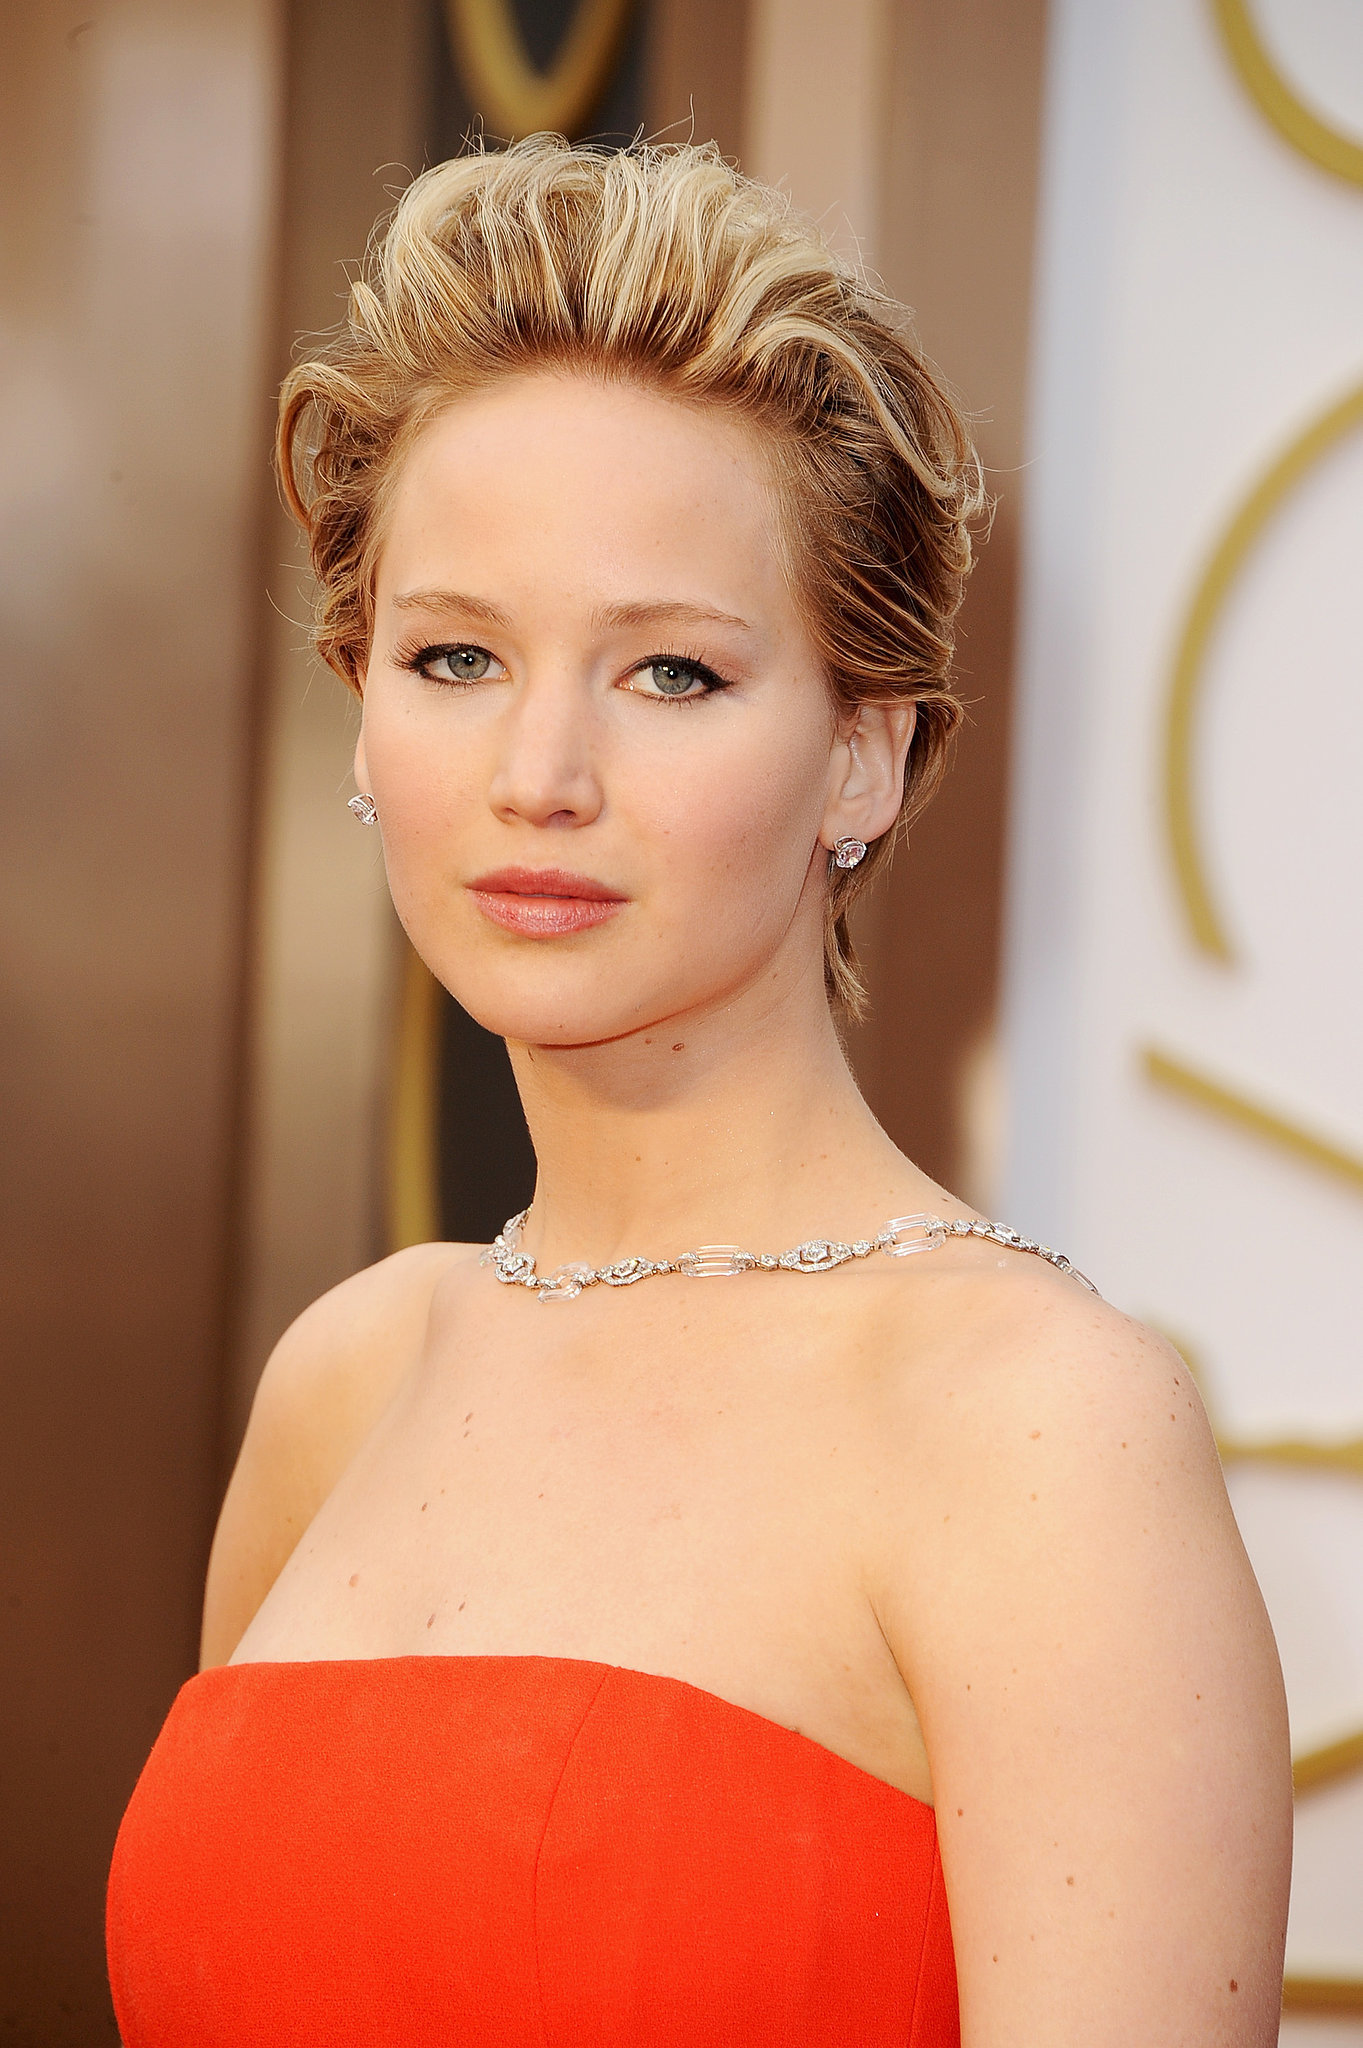 The Complete Guide to Jennifer Lawrence's Night at the Oscars